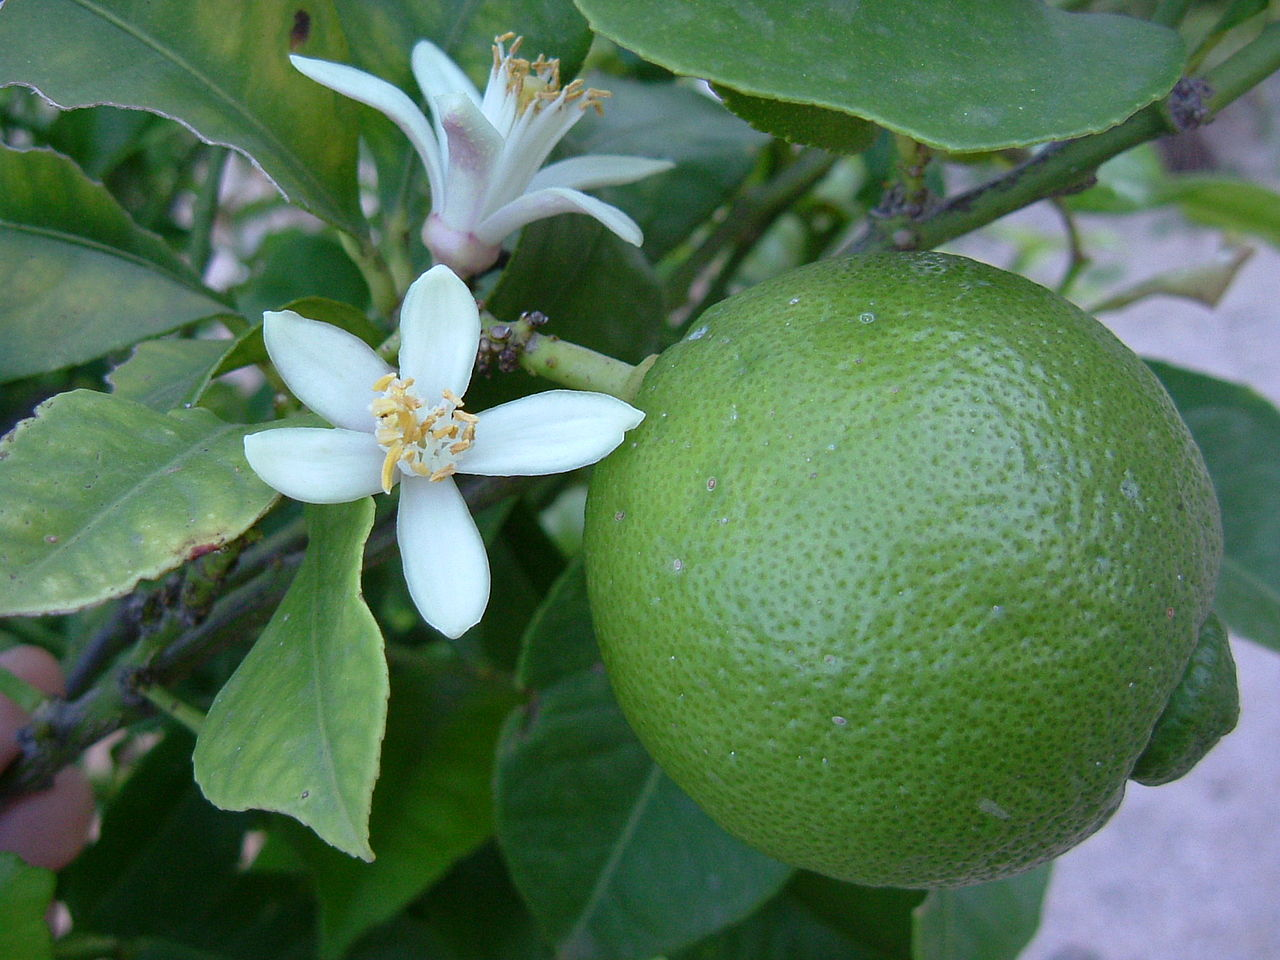 image of lime